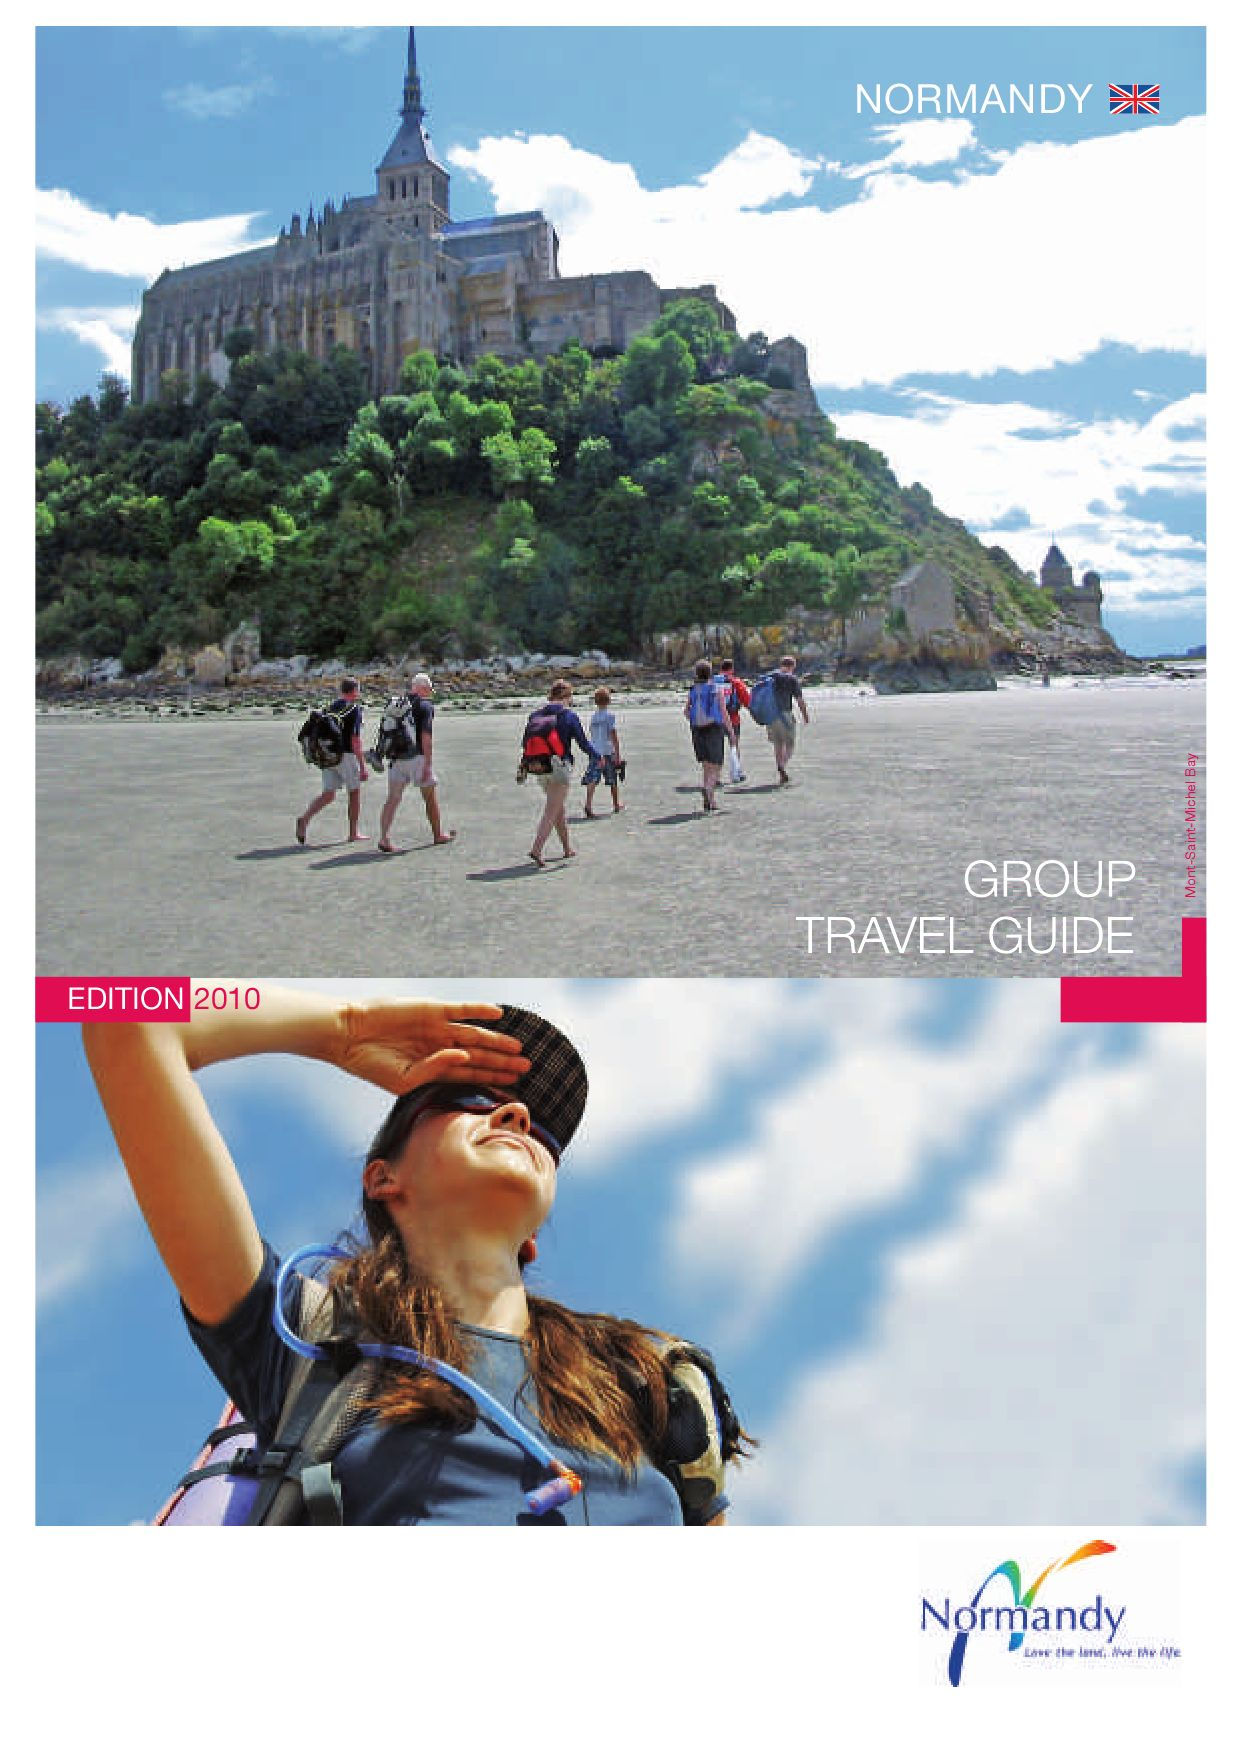 Gfroup Travel Guide 2010 by Norman Tourisme issuu